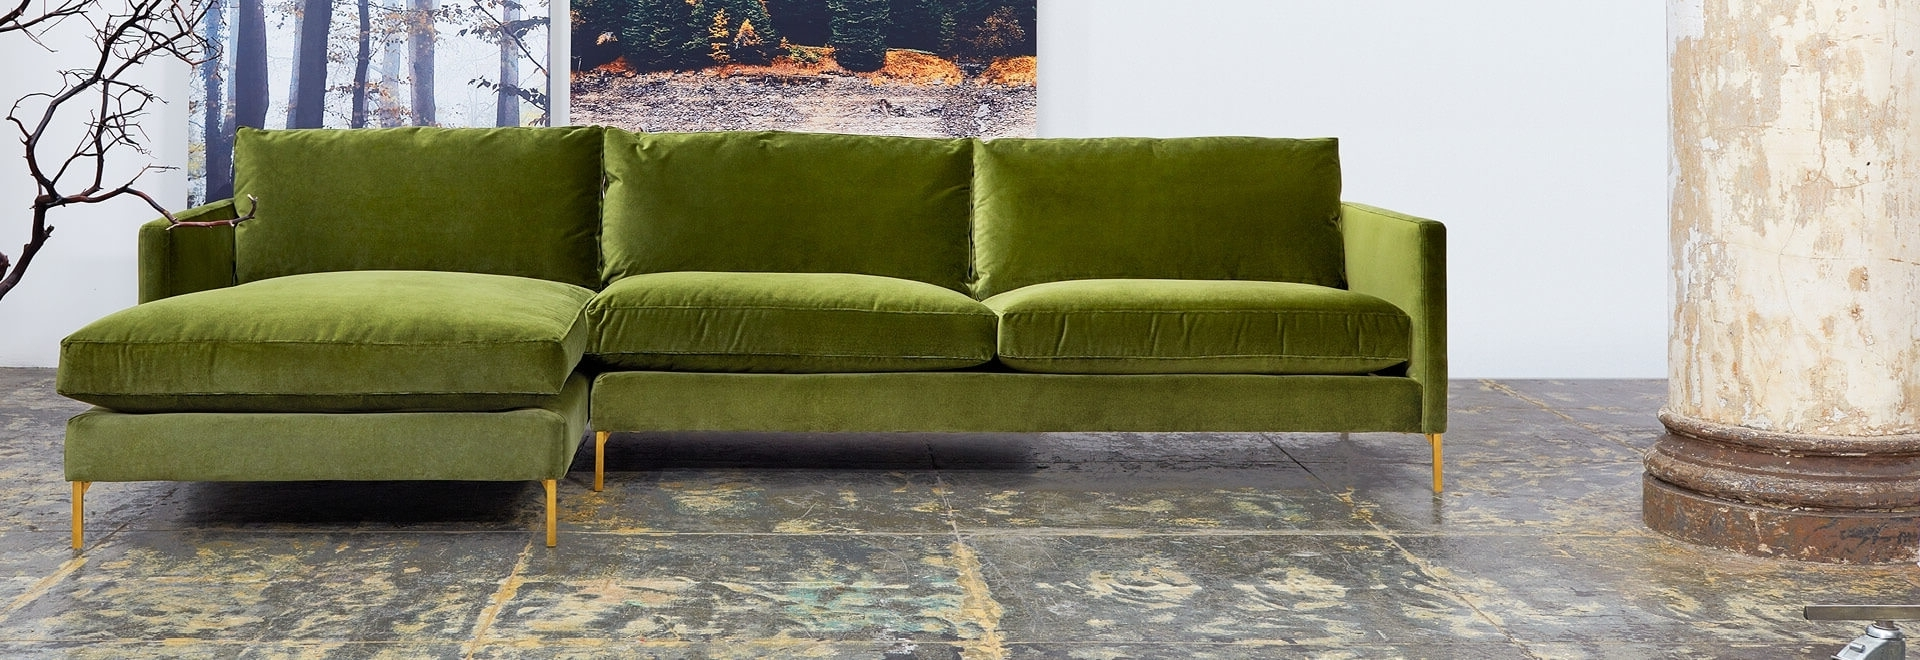 Queens Ny Sectional Sofas For 2018 Cobble Hill Furniture At Abc Home (View 10 of 20)